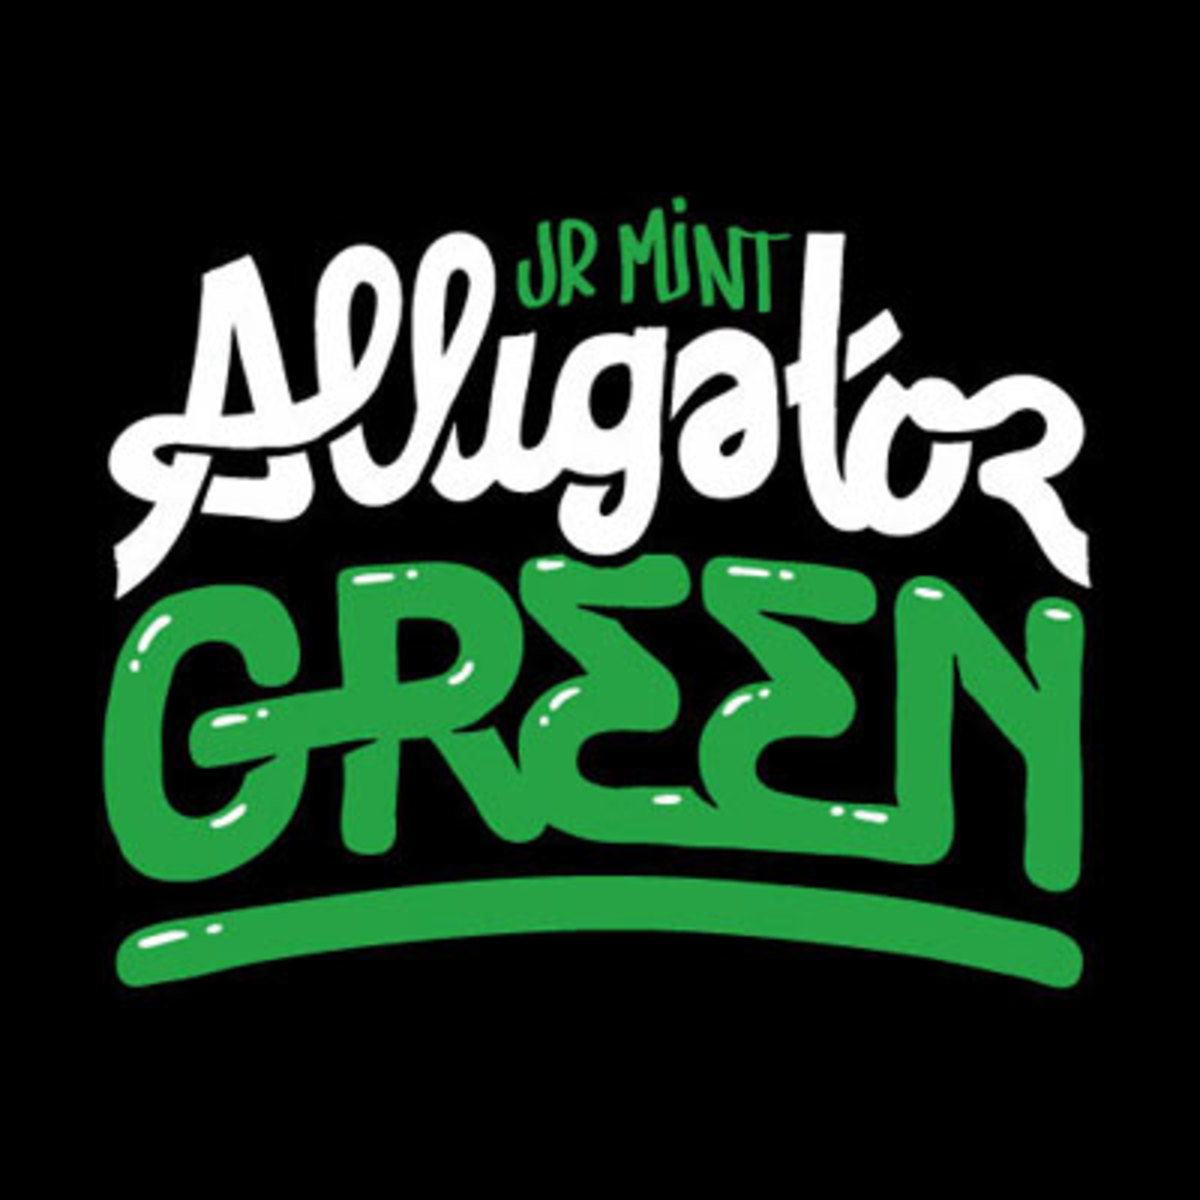 jrmint-alligatorgreen.jpg